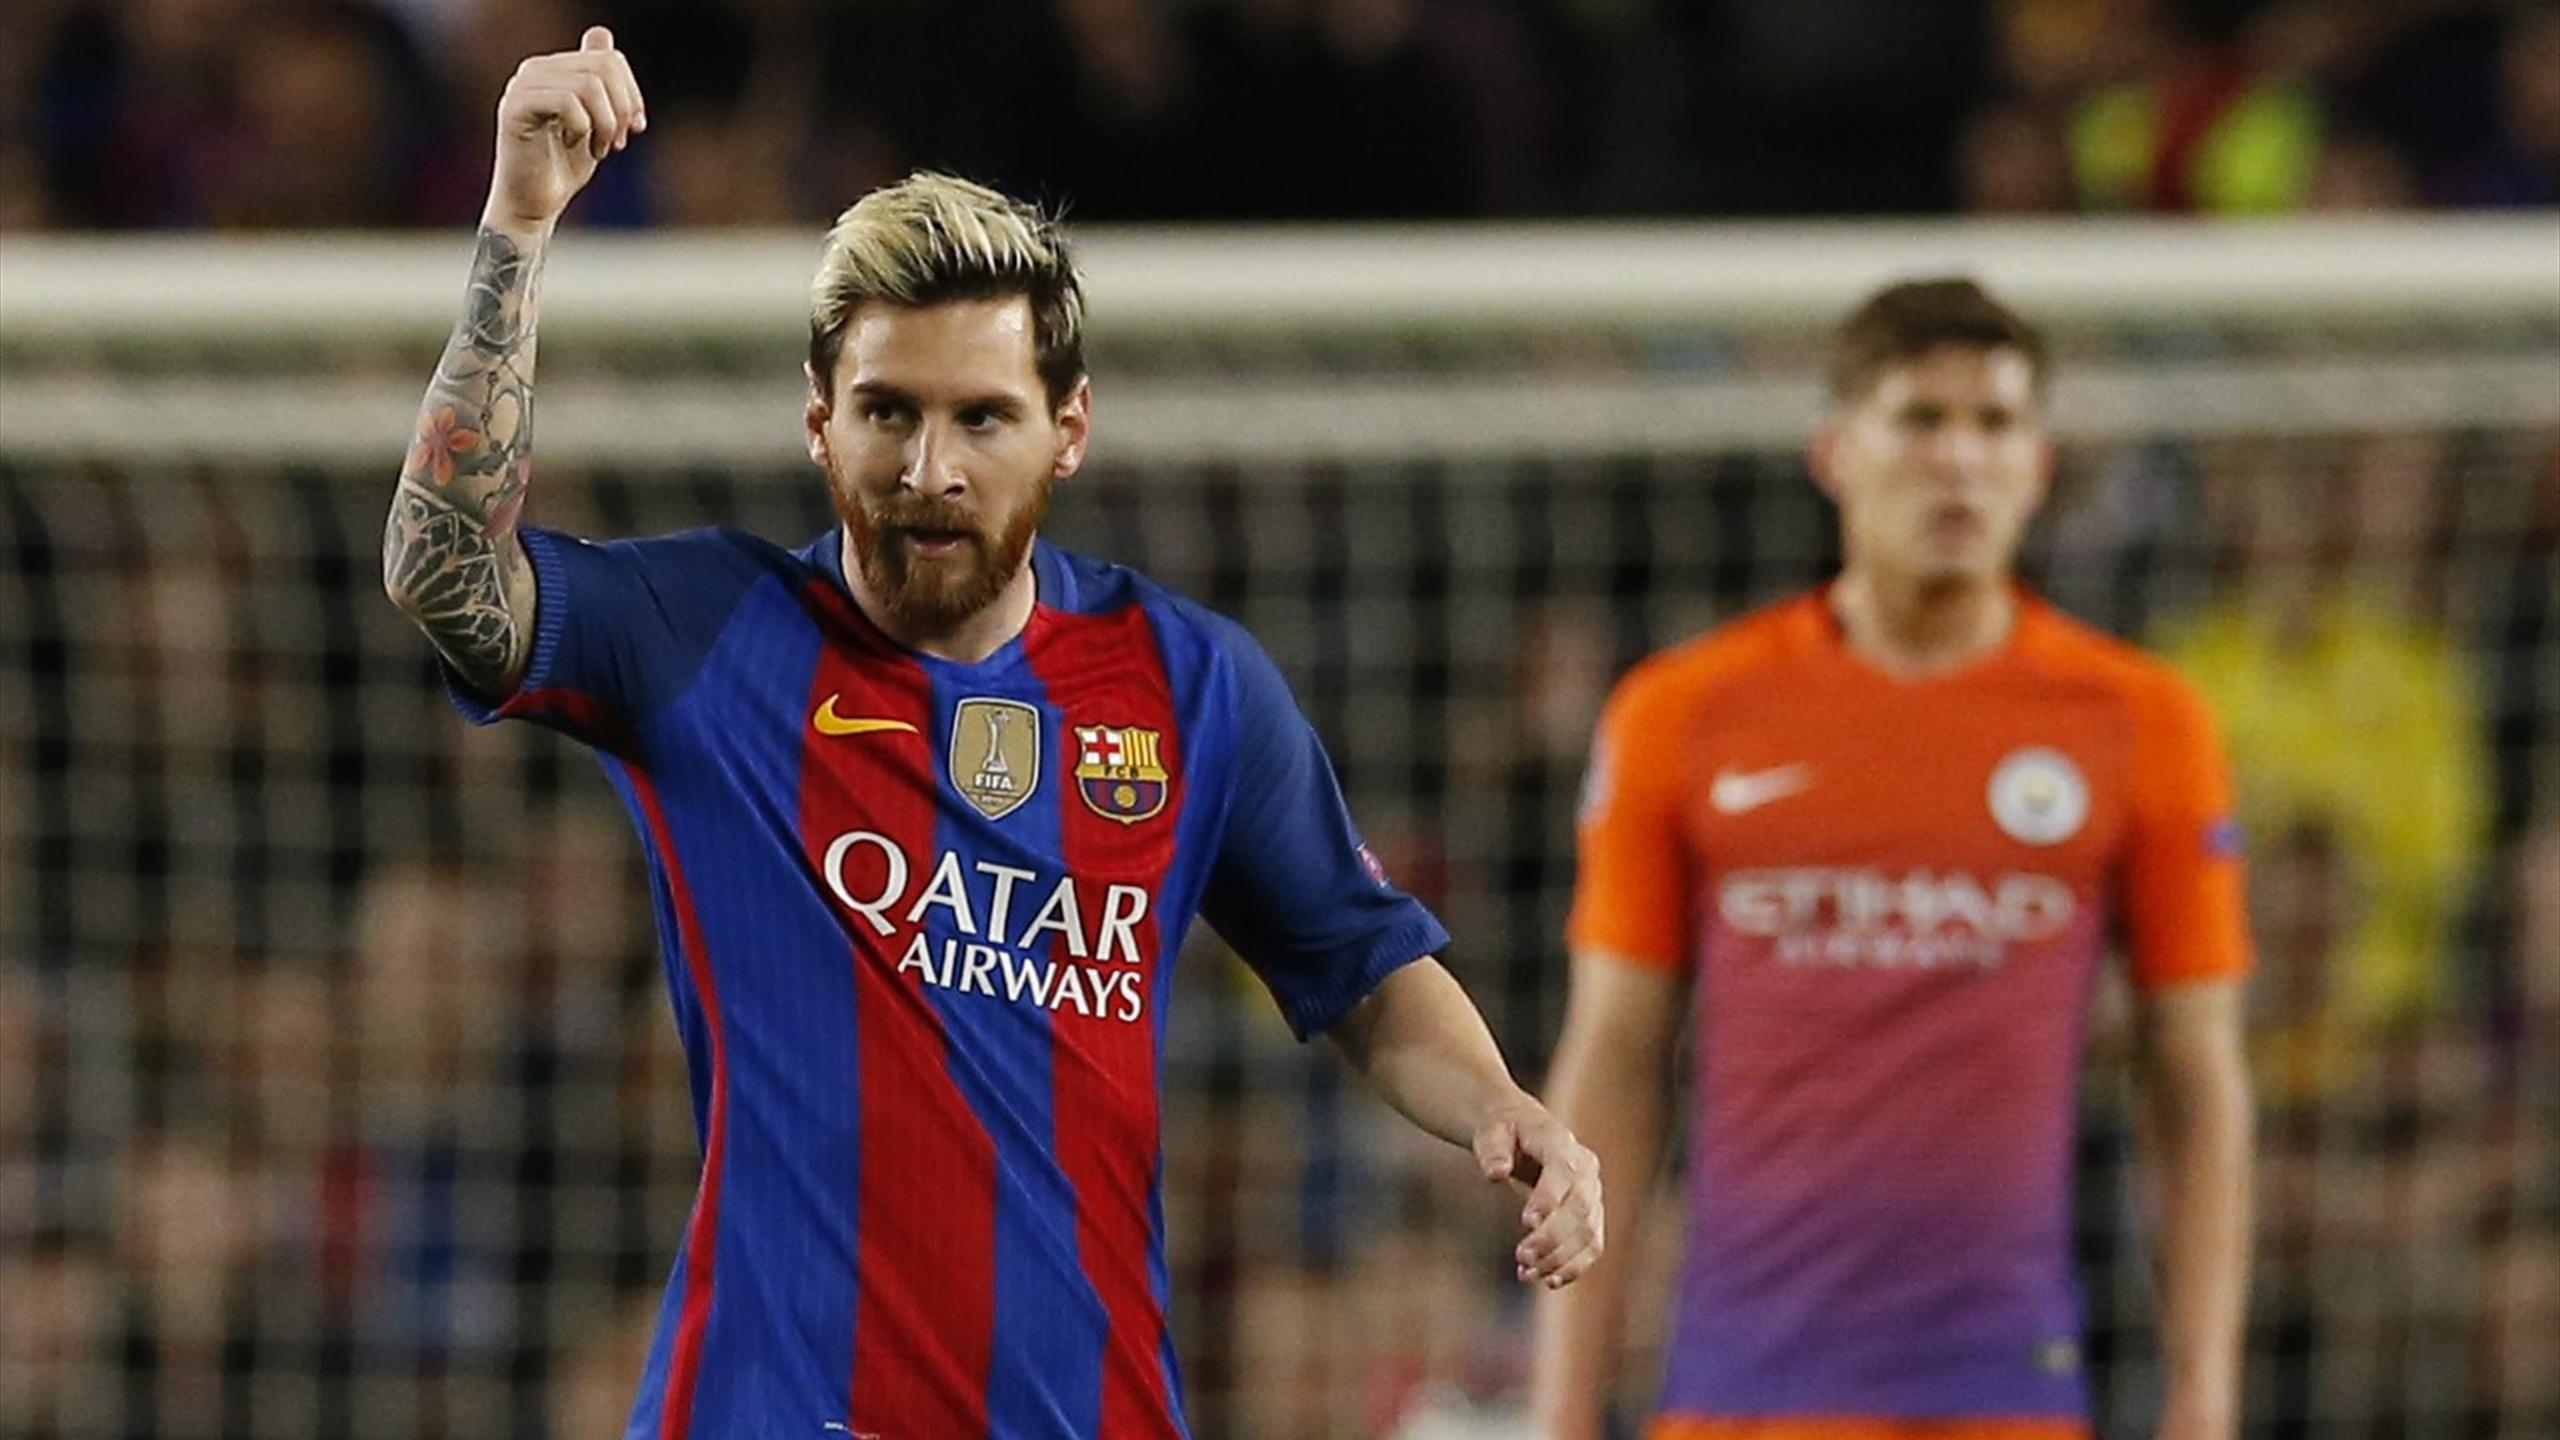 Barcelona's Lionel Messi celebrates scoring their first goal against Manchester City